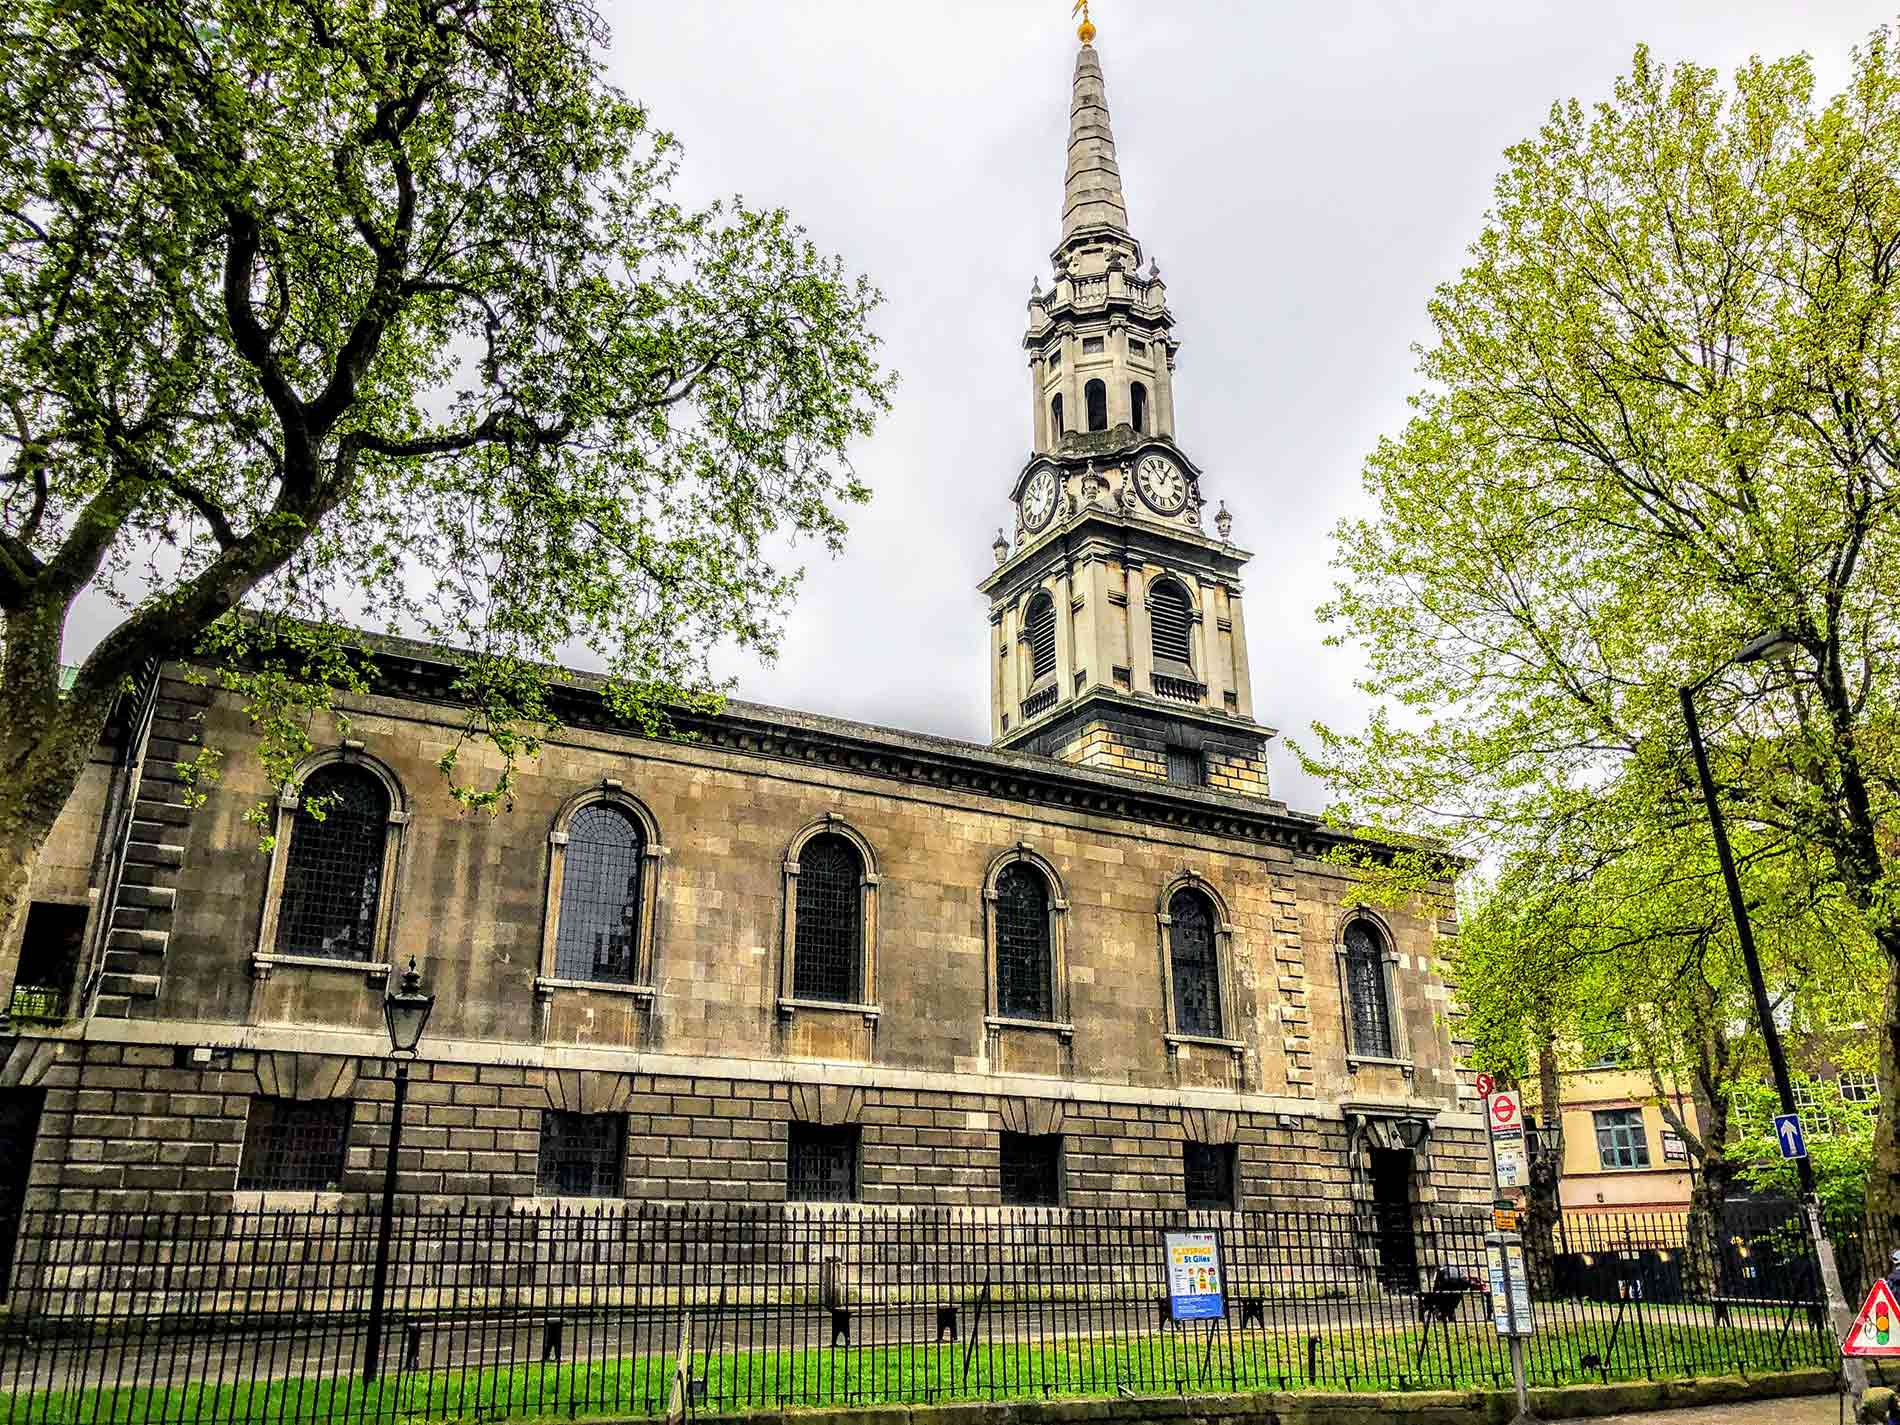 St Giles in the Fields